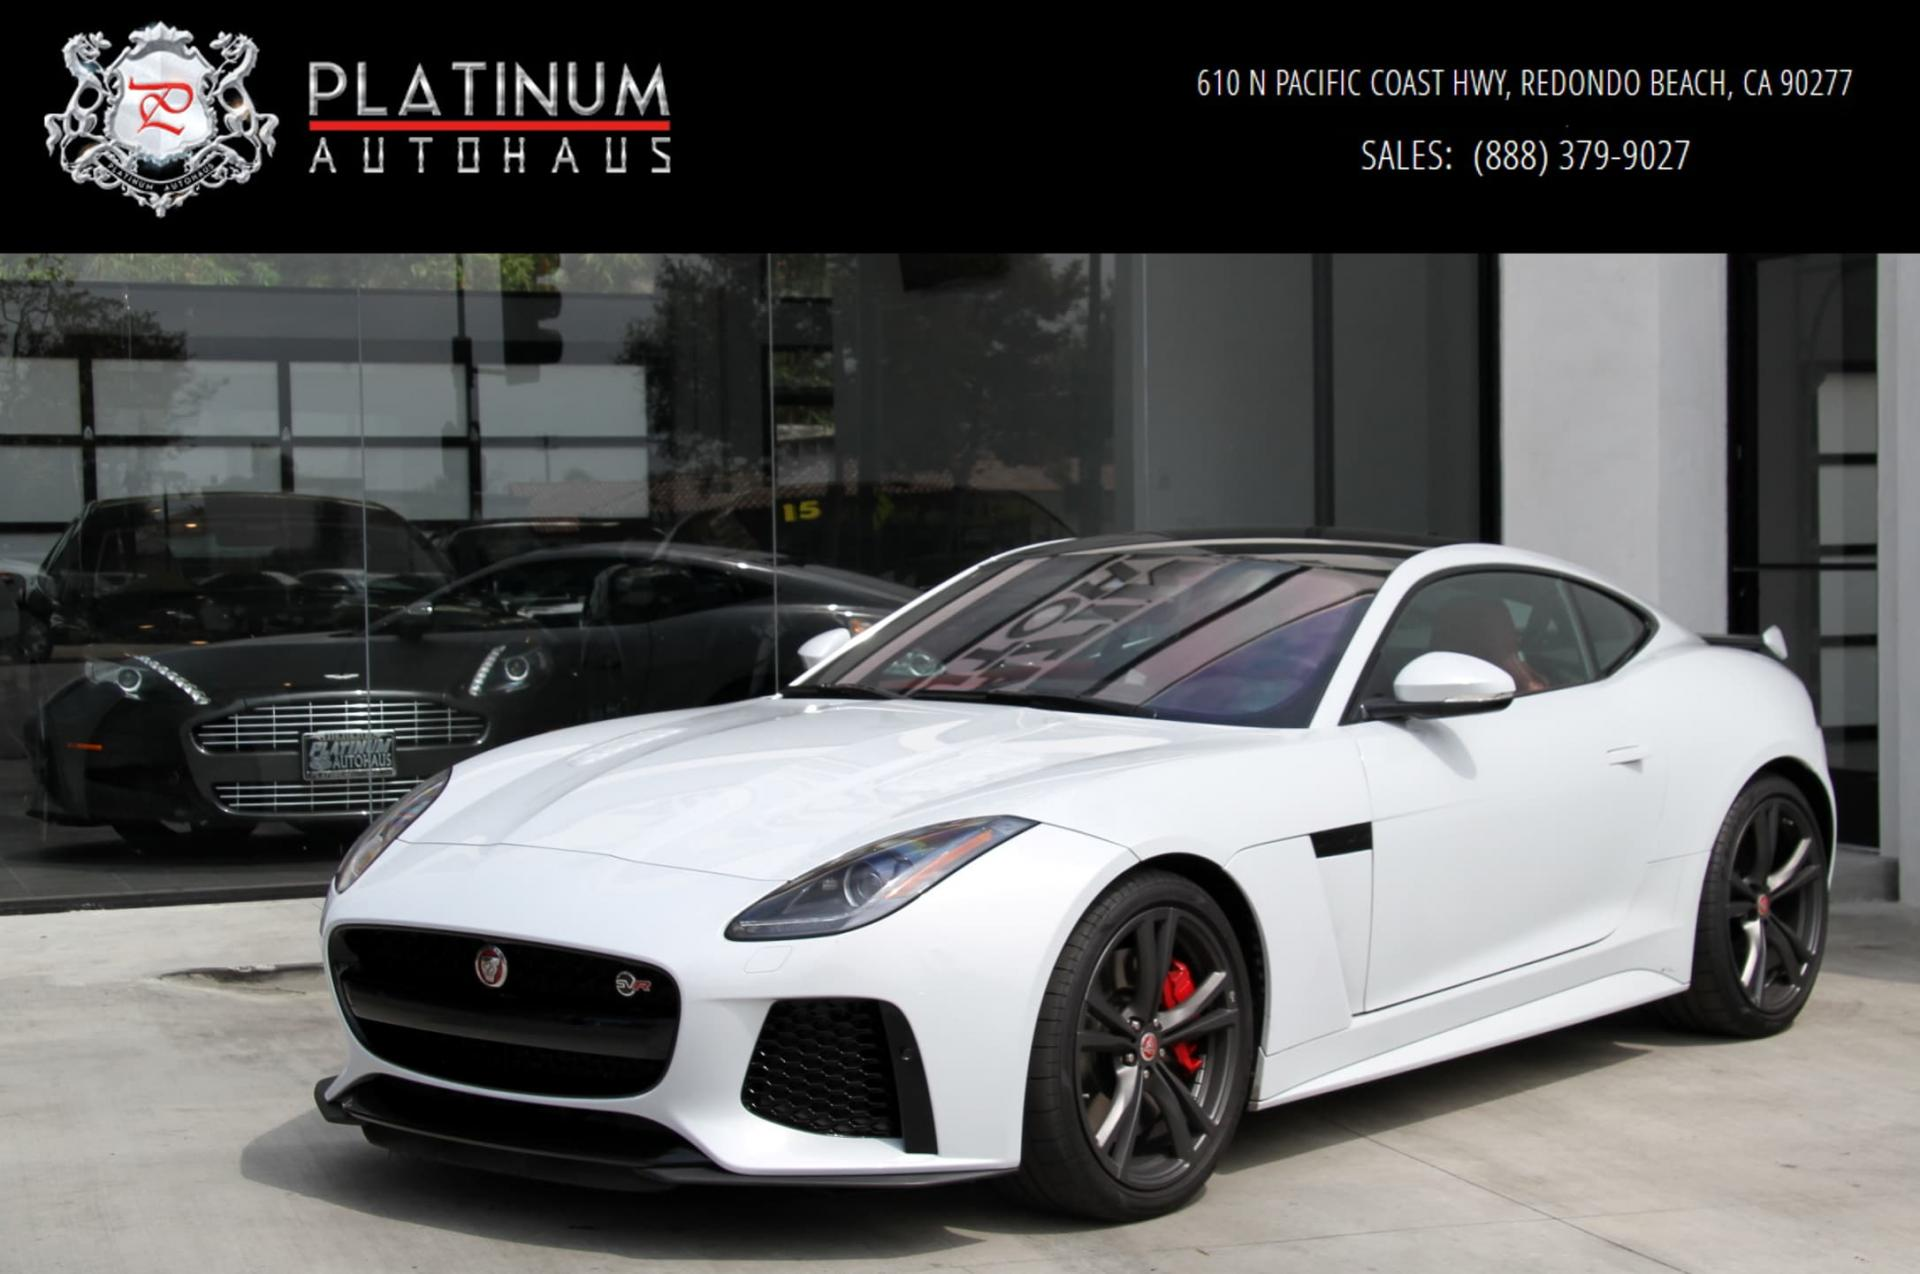 2017 Jaguar F-TYPE SVR ** MSRP $133,669 ** Stock # K41723 for sale